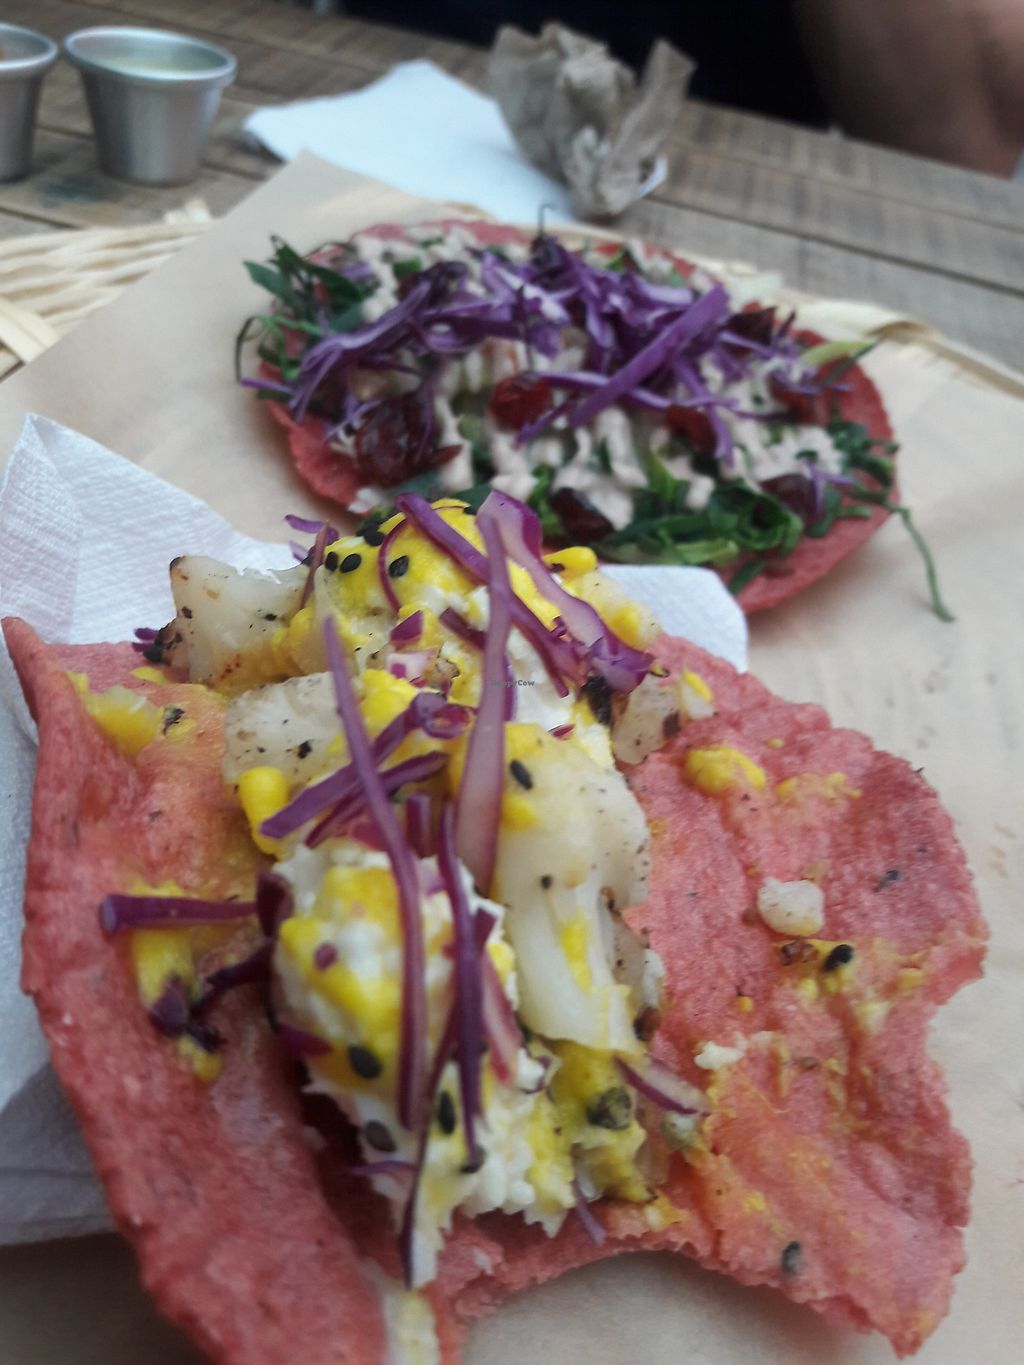 "Photo of La Pitahaya Vegana  by <a href=""/members/profile/DaniLove"">DaniLove</a> <br/>tacos ricos <br/> June 27, 2017  - <a href='/contact/abuse/image/69829/273917'>Report</a>"